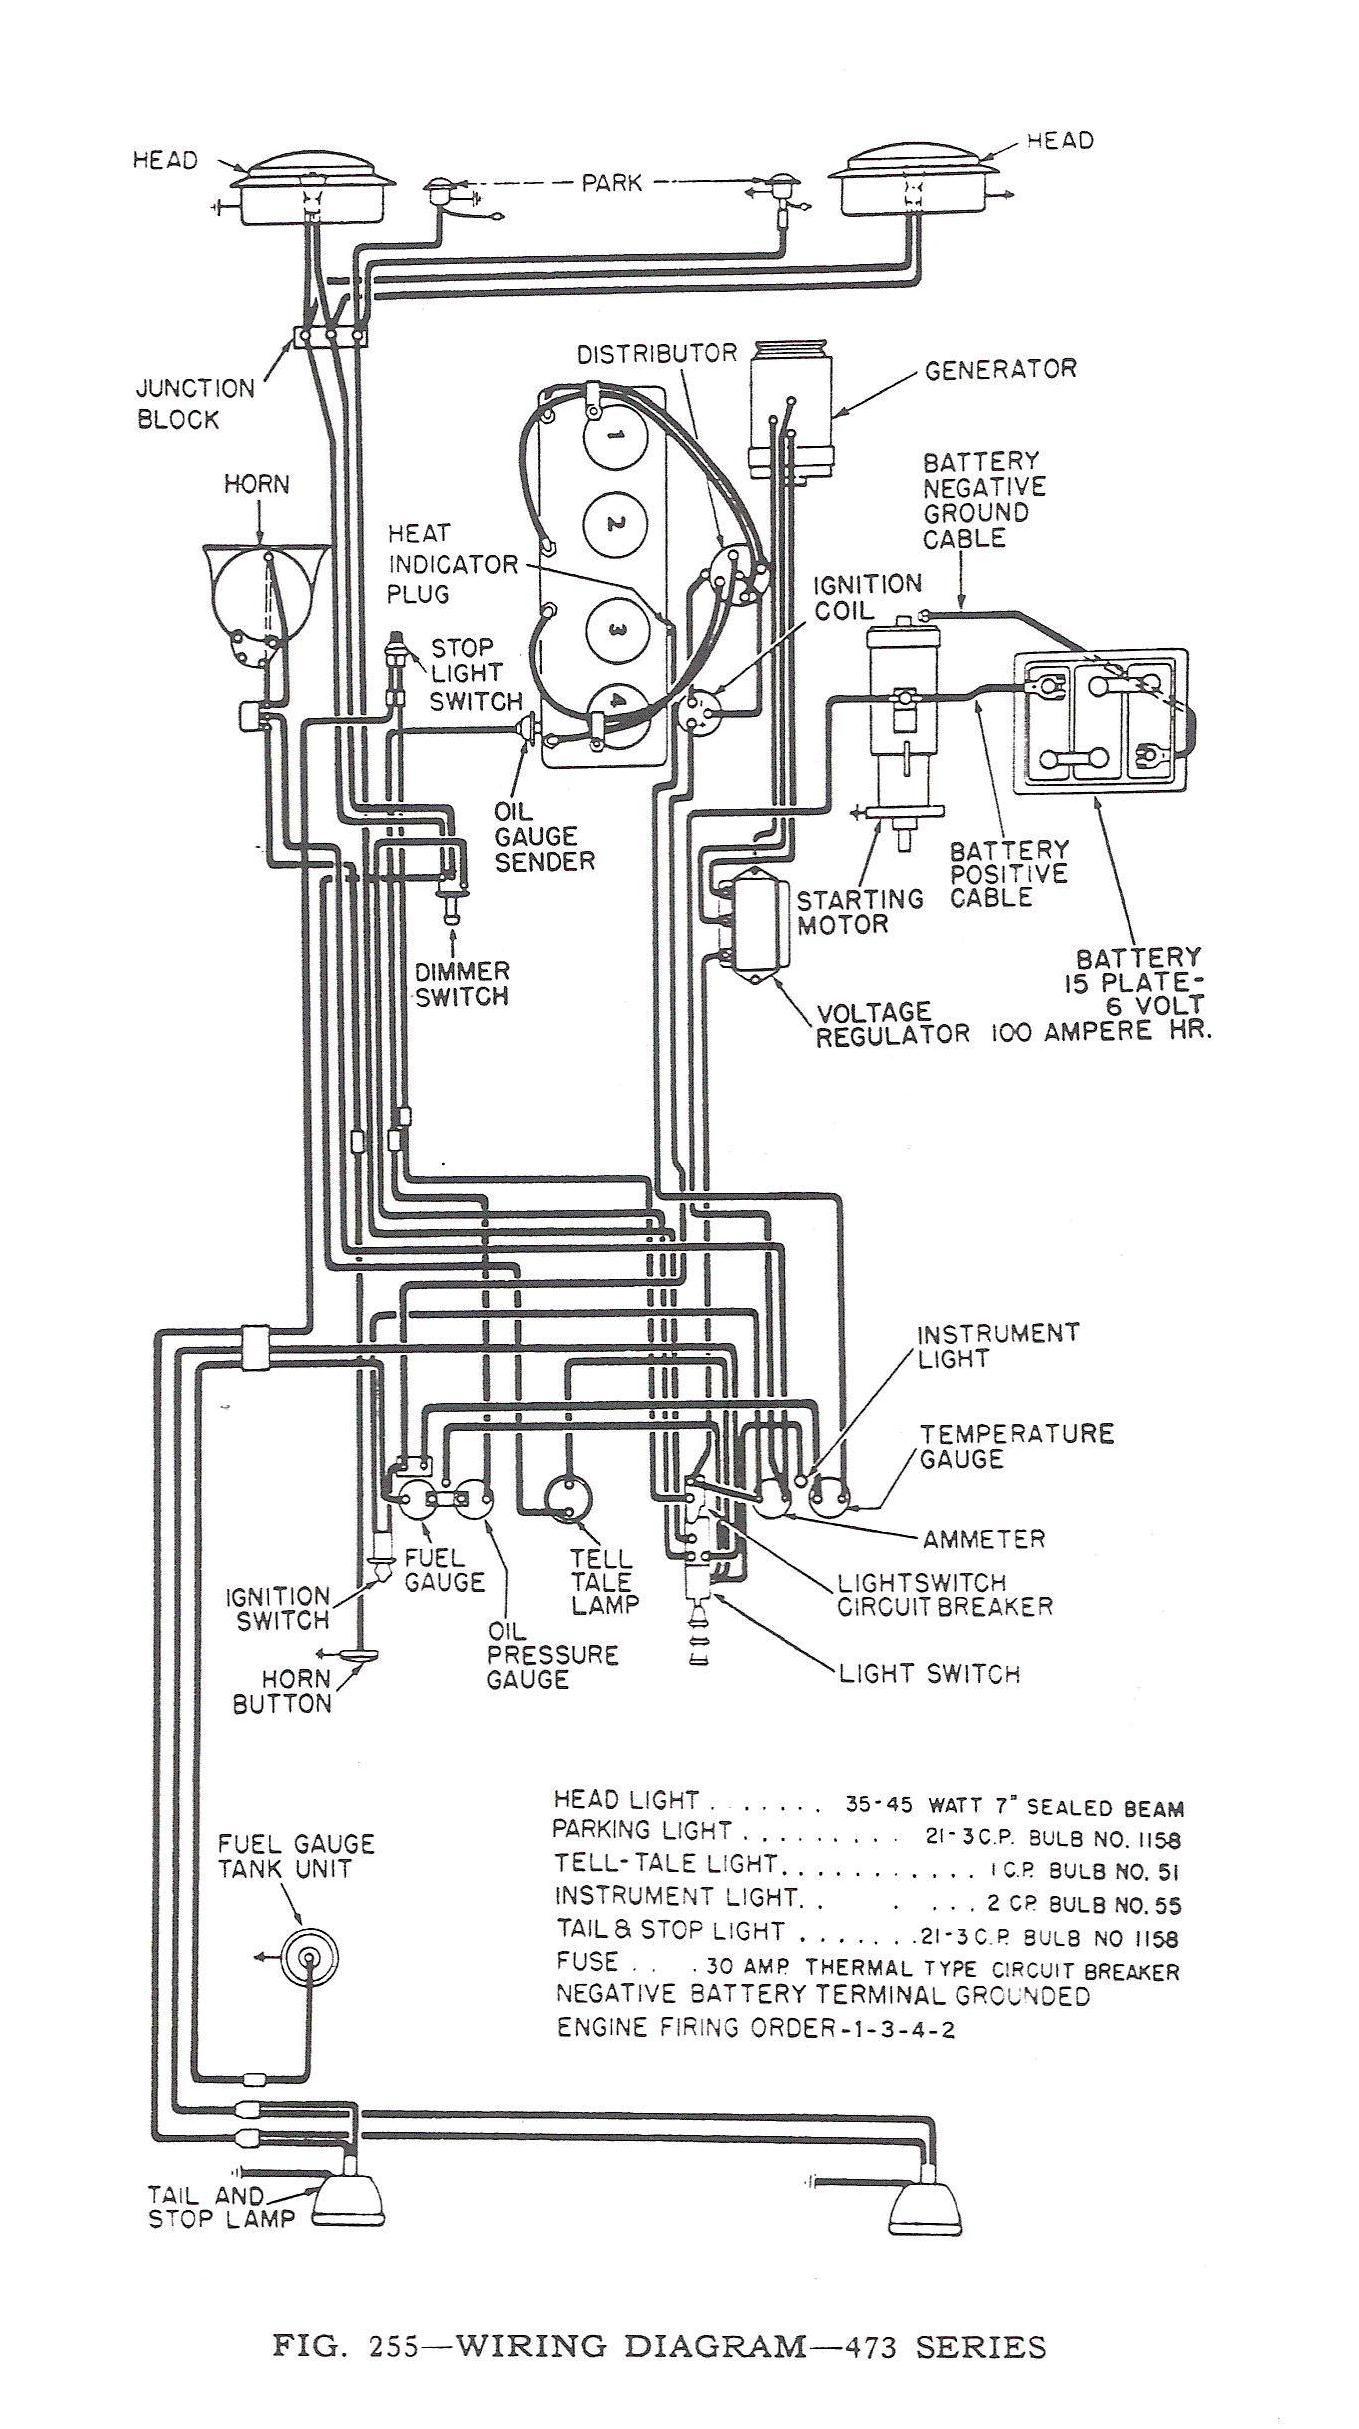 1952 jeep series 473 wiring diagrams - Google Search Willis Overland, Jeep  Willys, Jeep